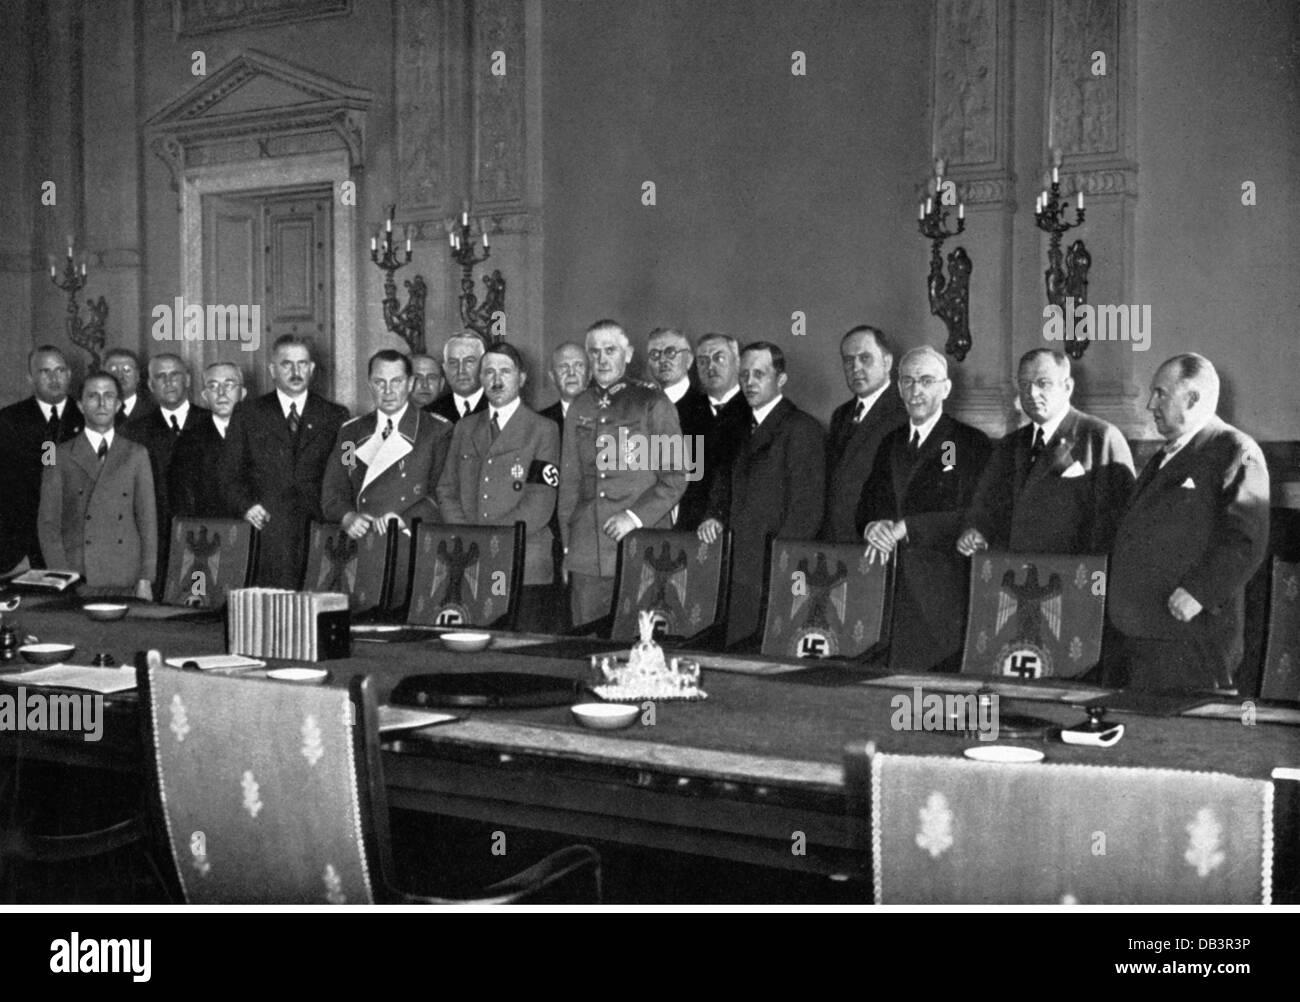 National Socialism, Politics, Reintroduction Of Conscription 16.3.1935,  Chancellor Adolf Hitler And His Cabinet, Chancellory, Be